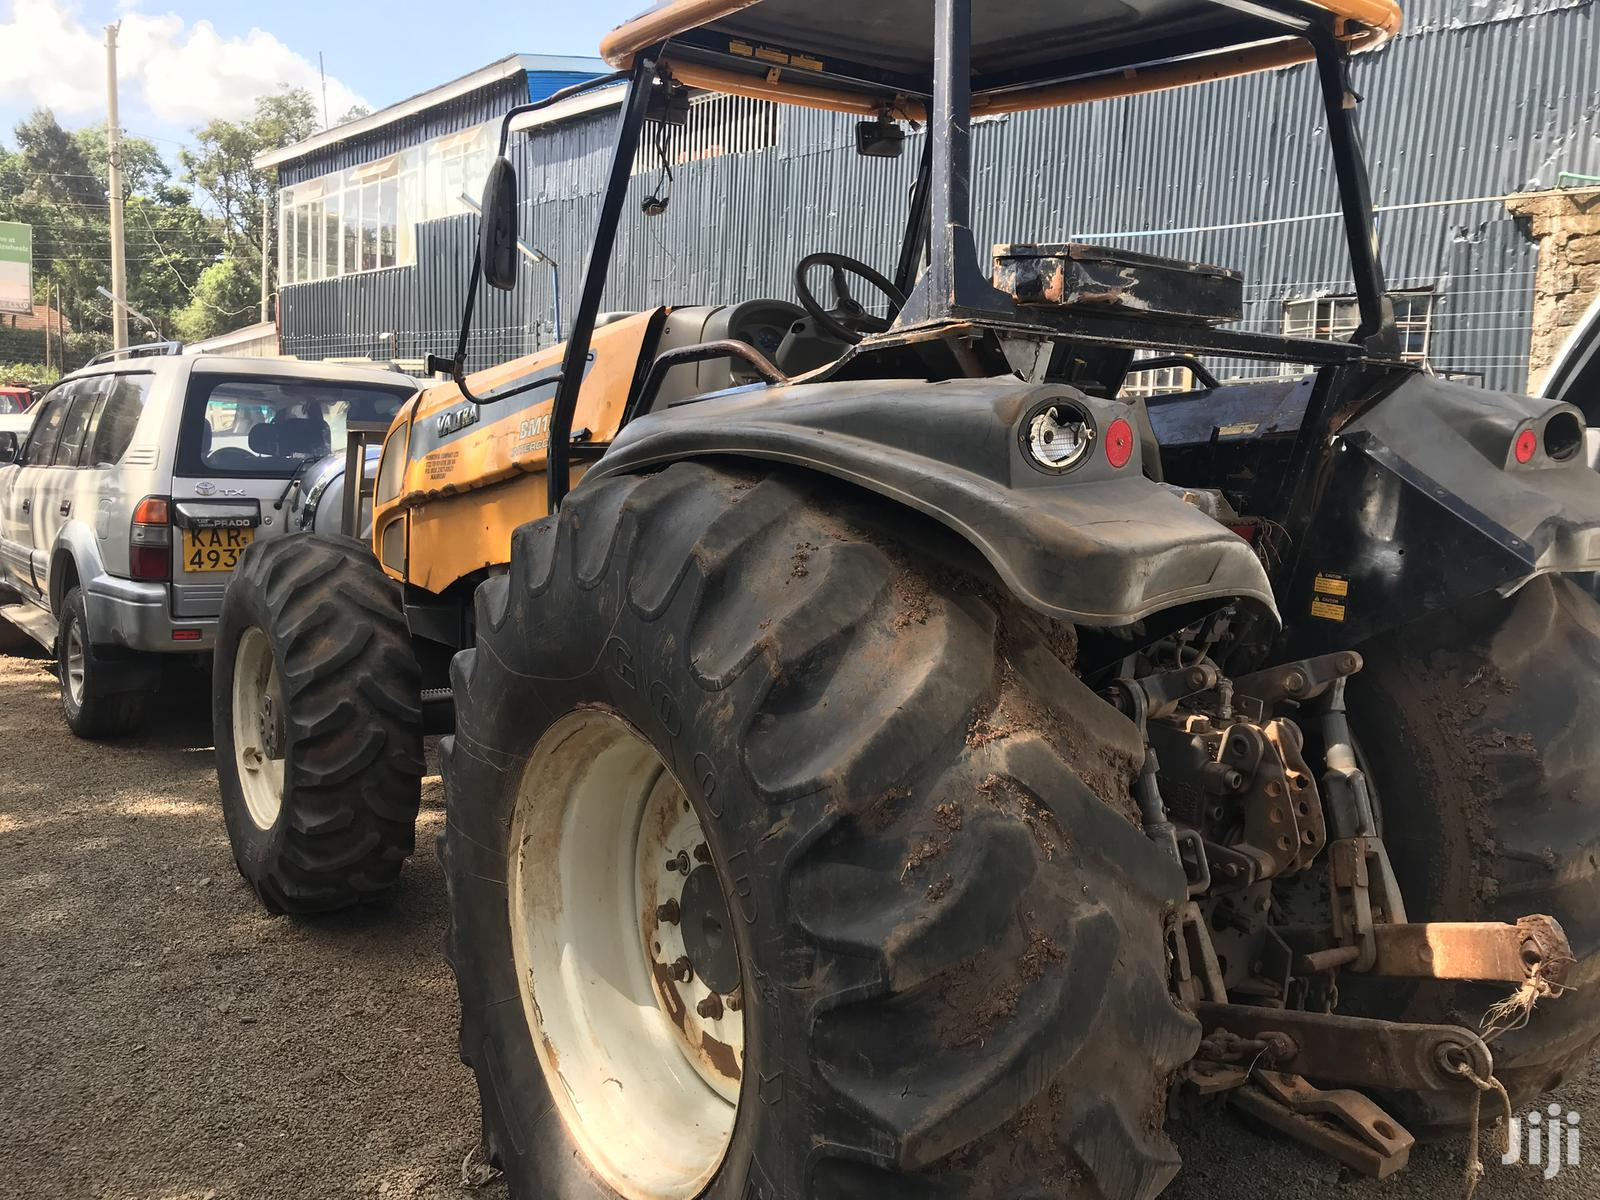 Tractor 4WD Valtra Big Ford, | Heavy Equipment for sale in Nairobi Central, Nairobi, Kenya